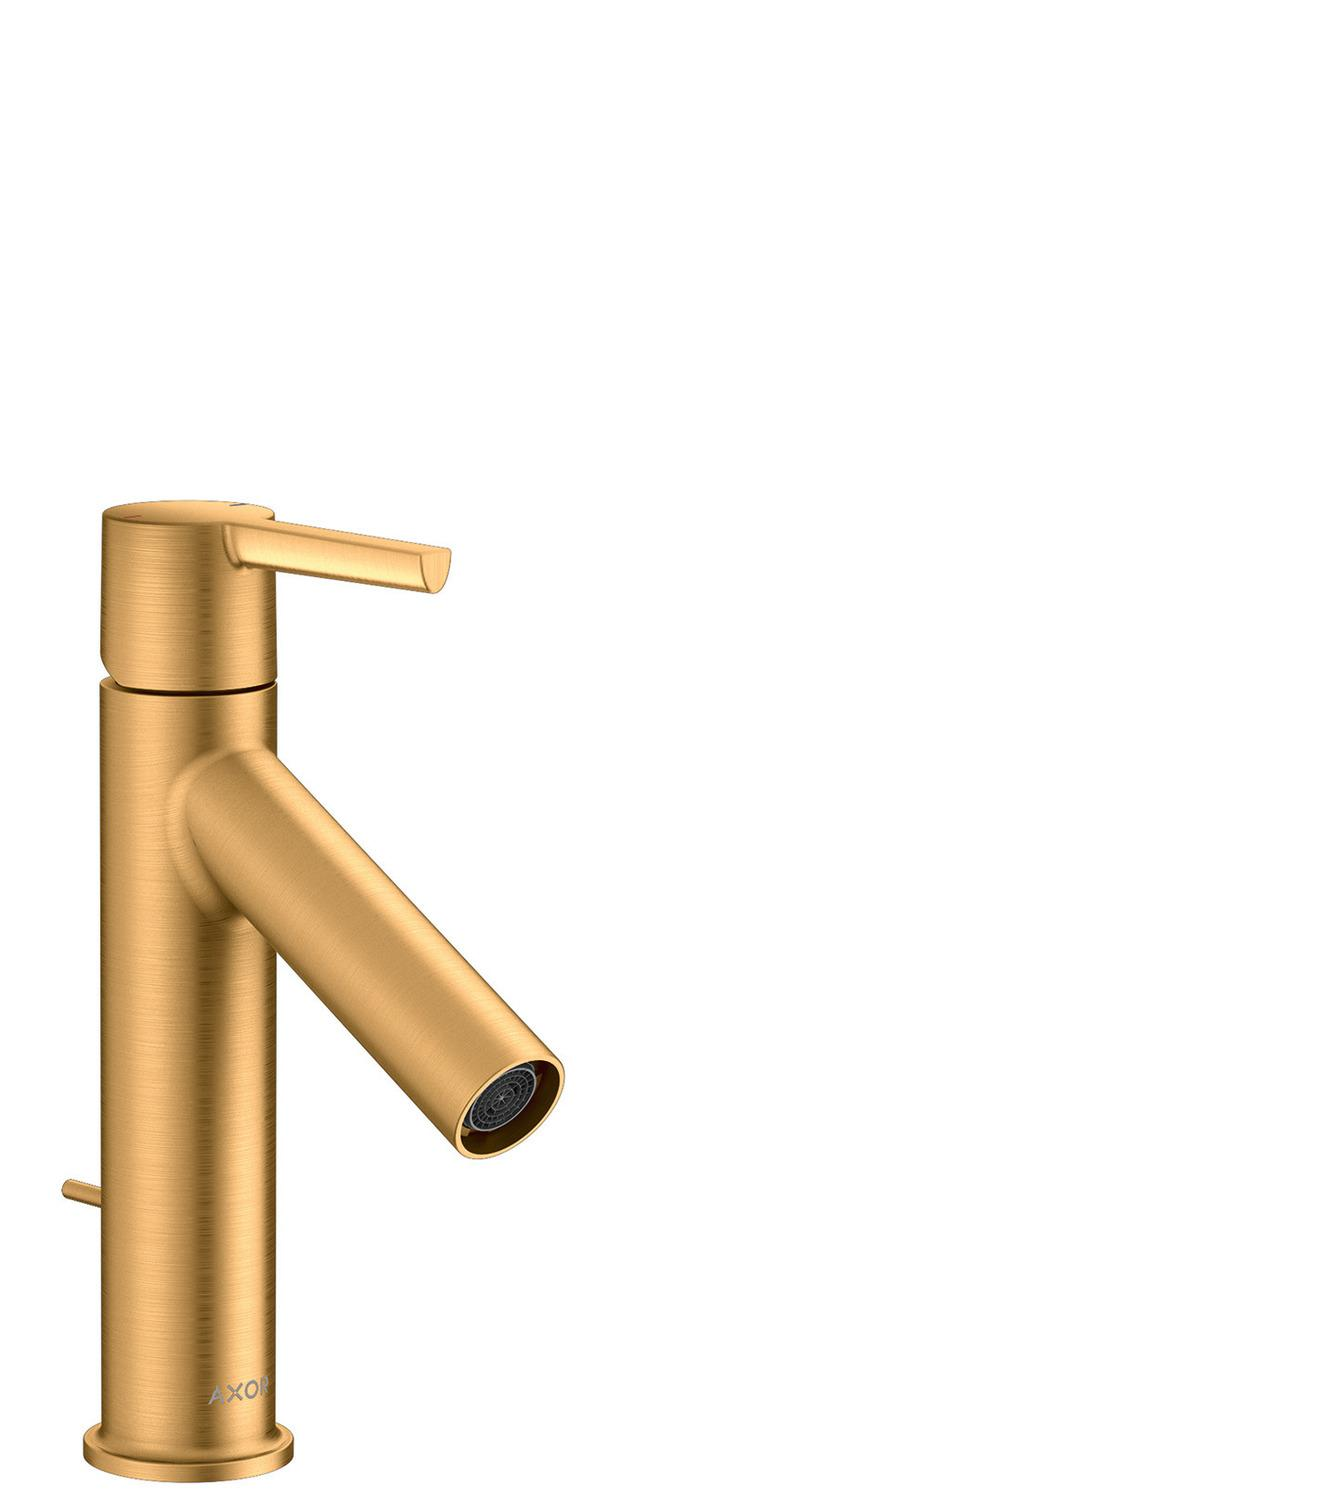 Brushed Gold Optic Single lever basin mixer 100 with lever handle and pop-up waste set